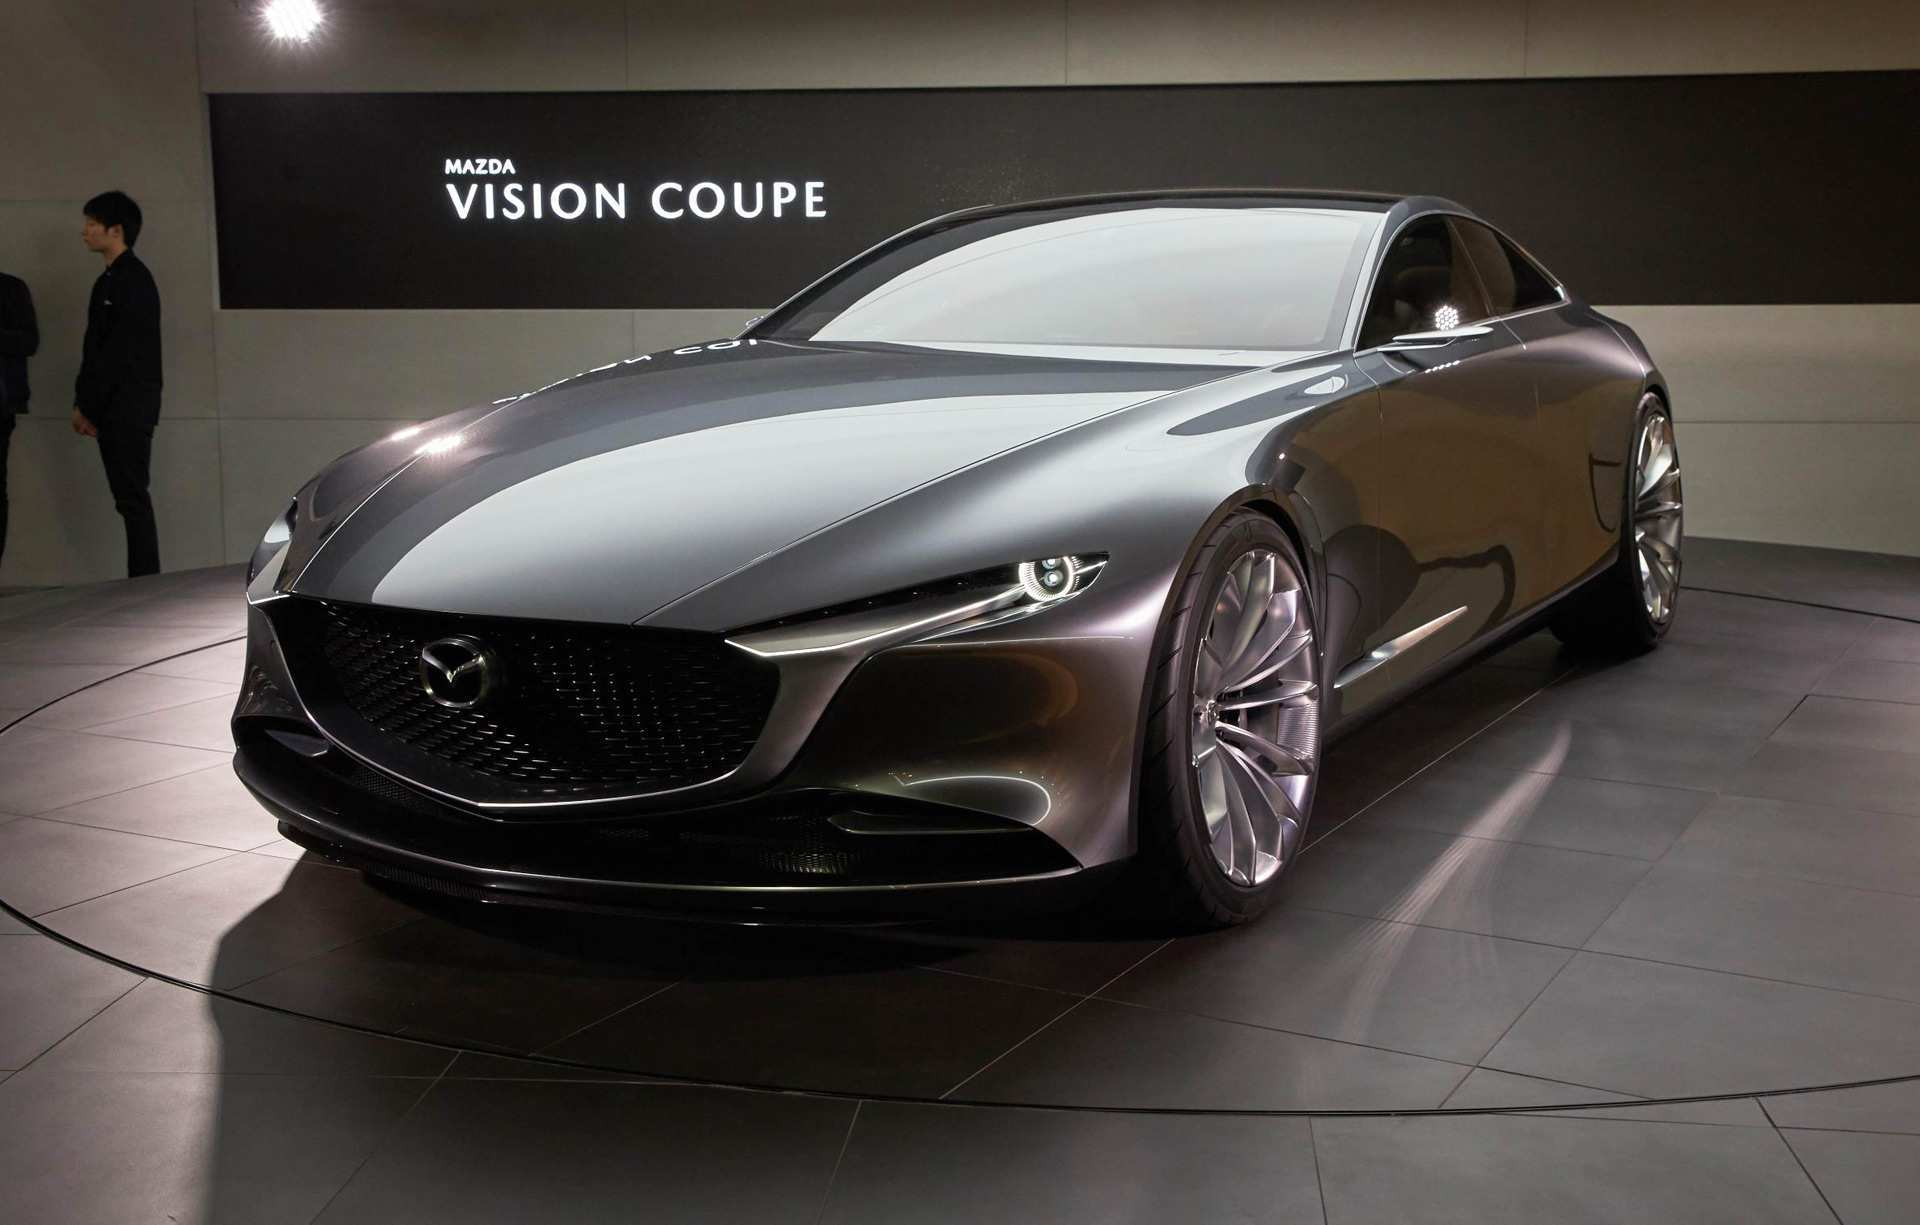 80 Best Review The 2019 Mazda Vision Coupe Price Concept Configurations with The 2019 Mazda Vision Coupe Price Concept